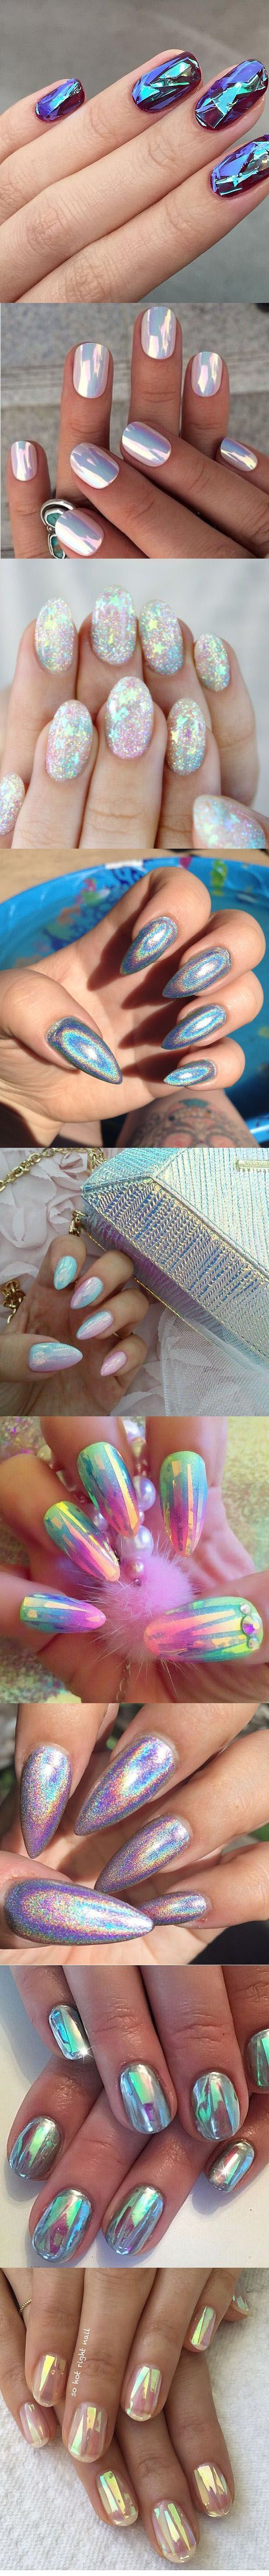 Holographic mermaid nails #manicure | ko-te.com by @evatornado |